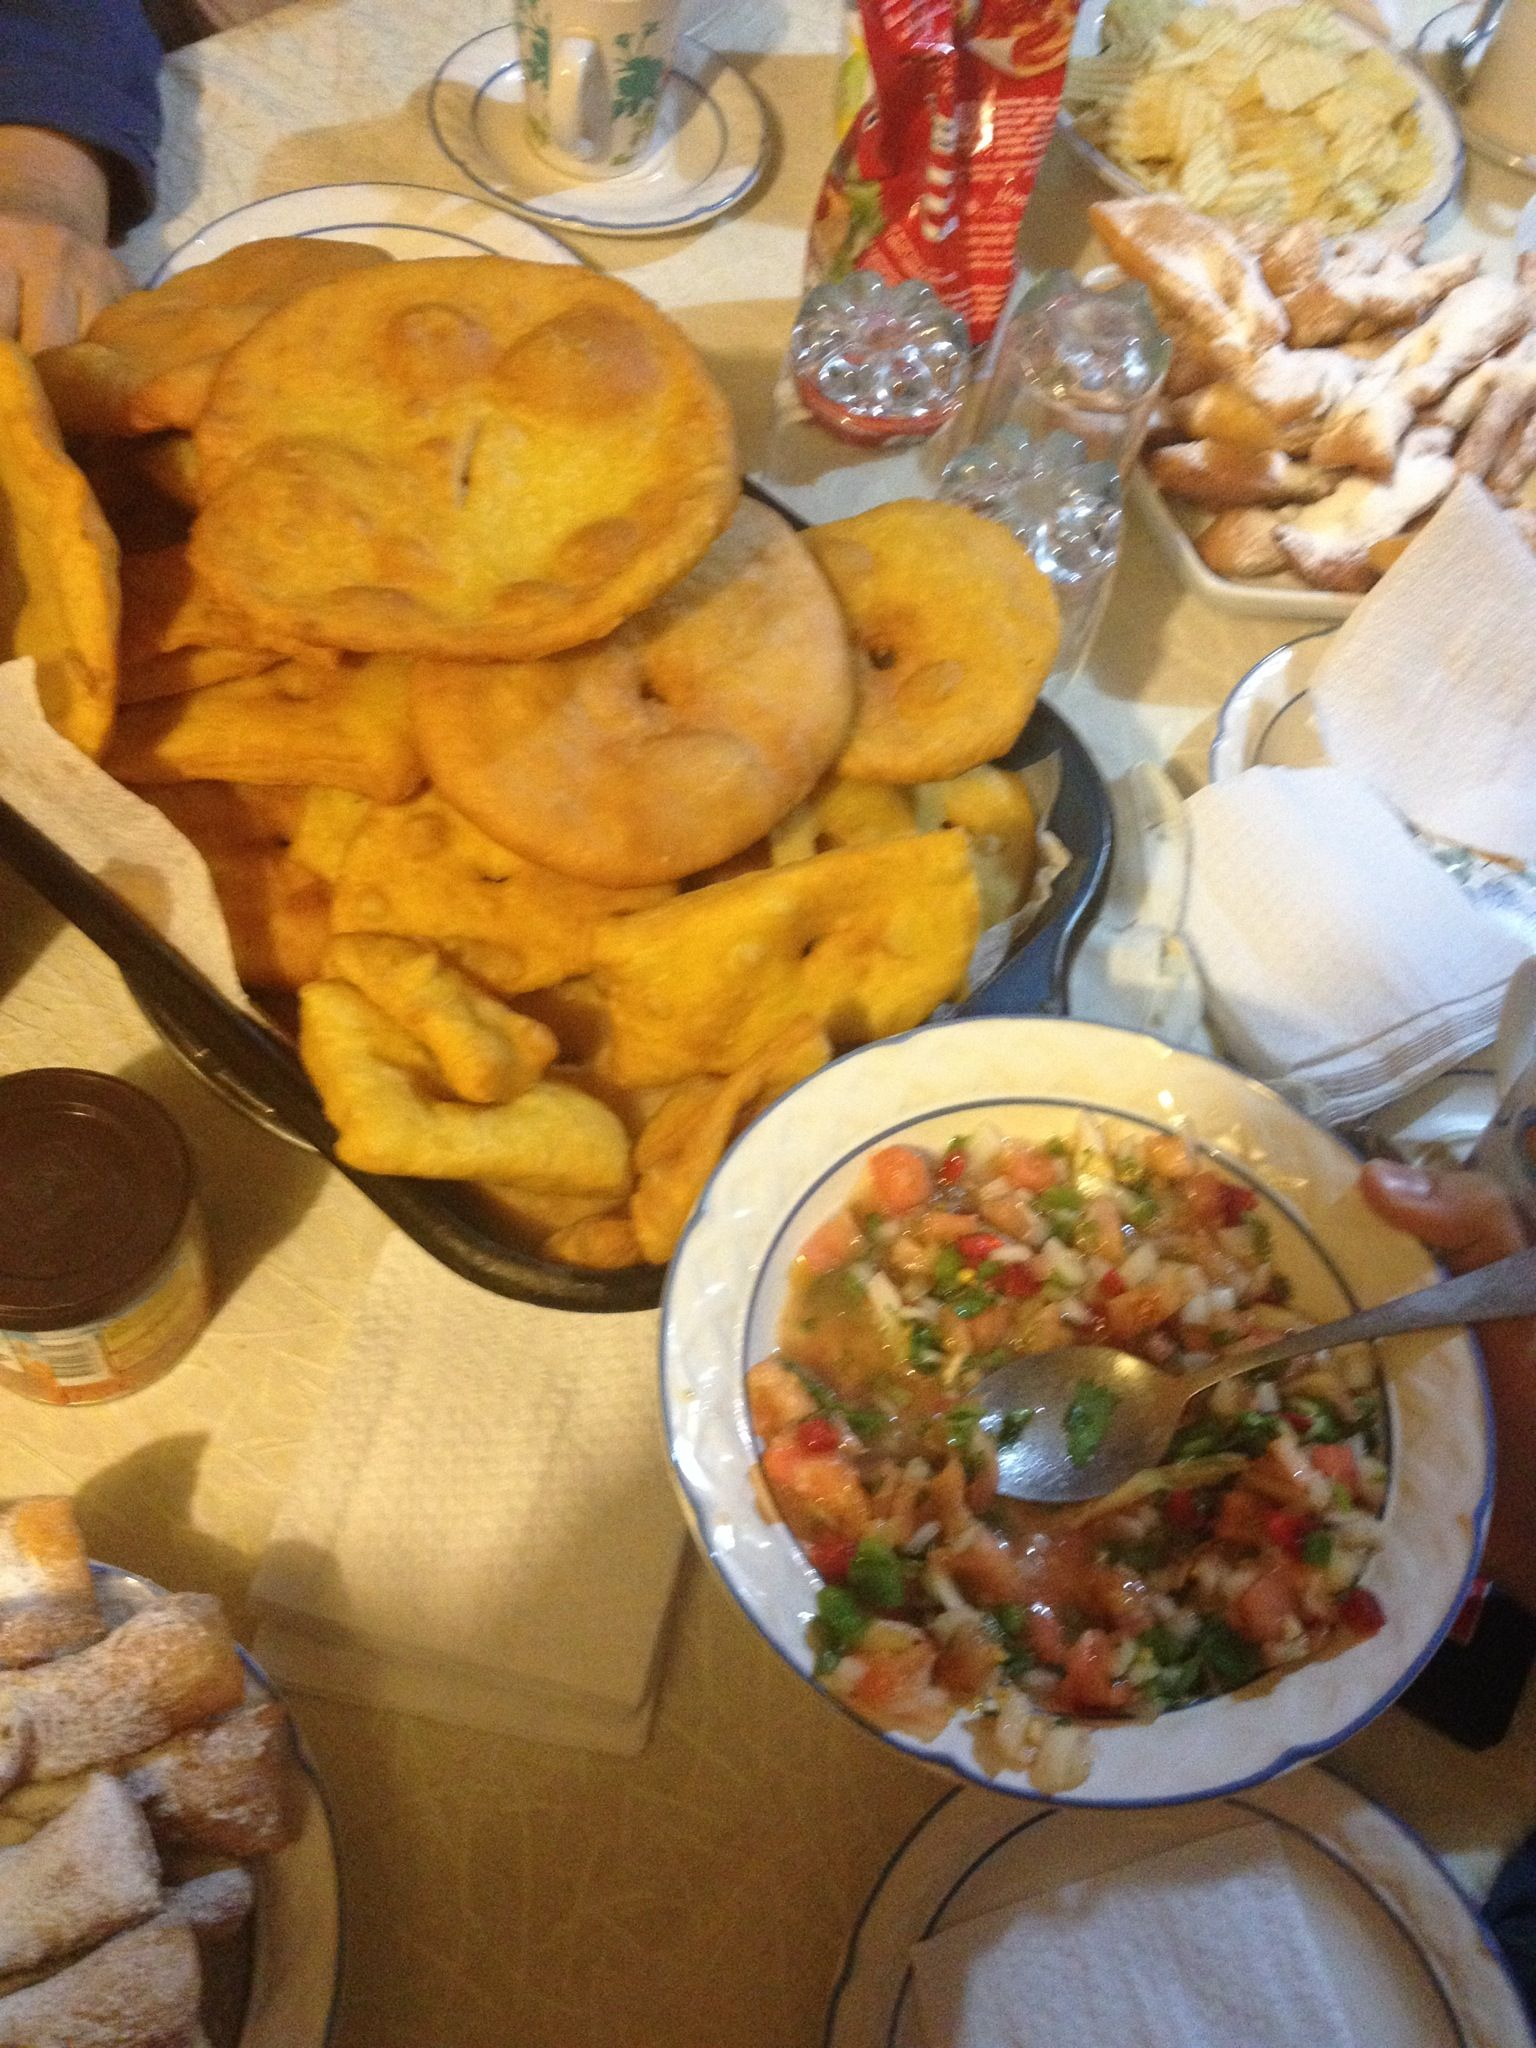 How to make authentic chilean sopaipillas recipes pinterest how to make authentic chilean sopaipillas recipe forumfinder Gallery